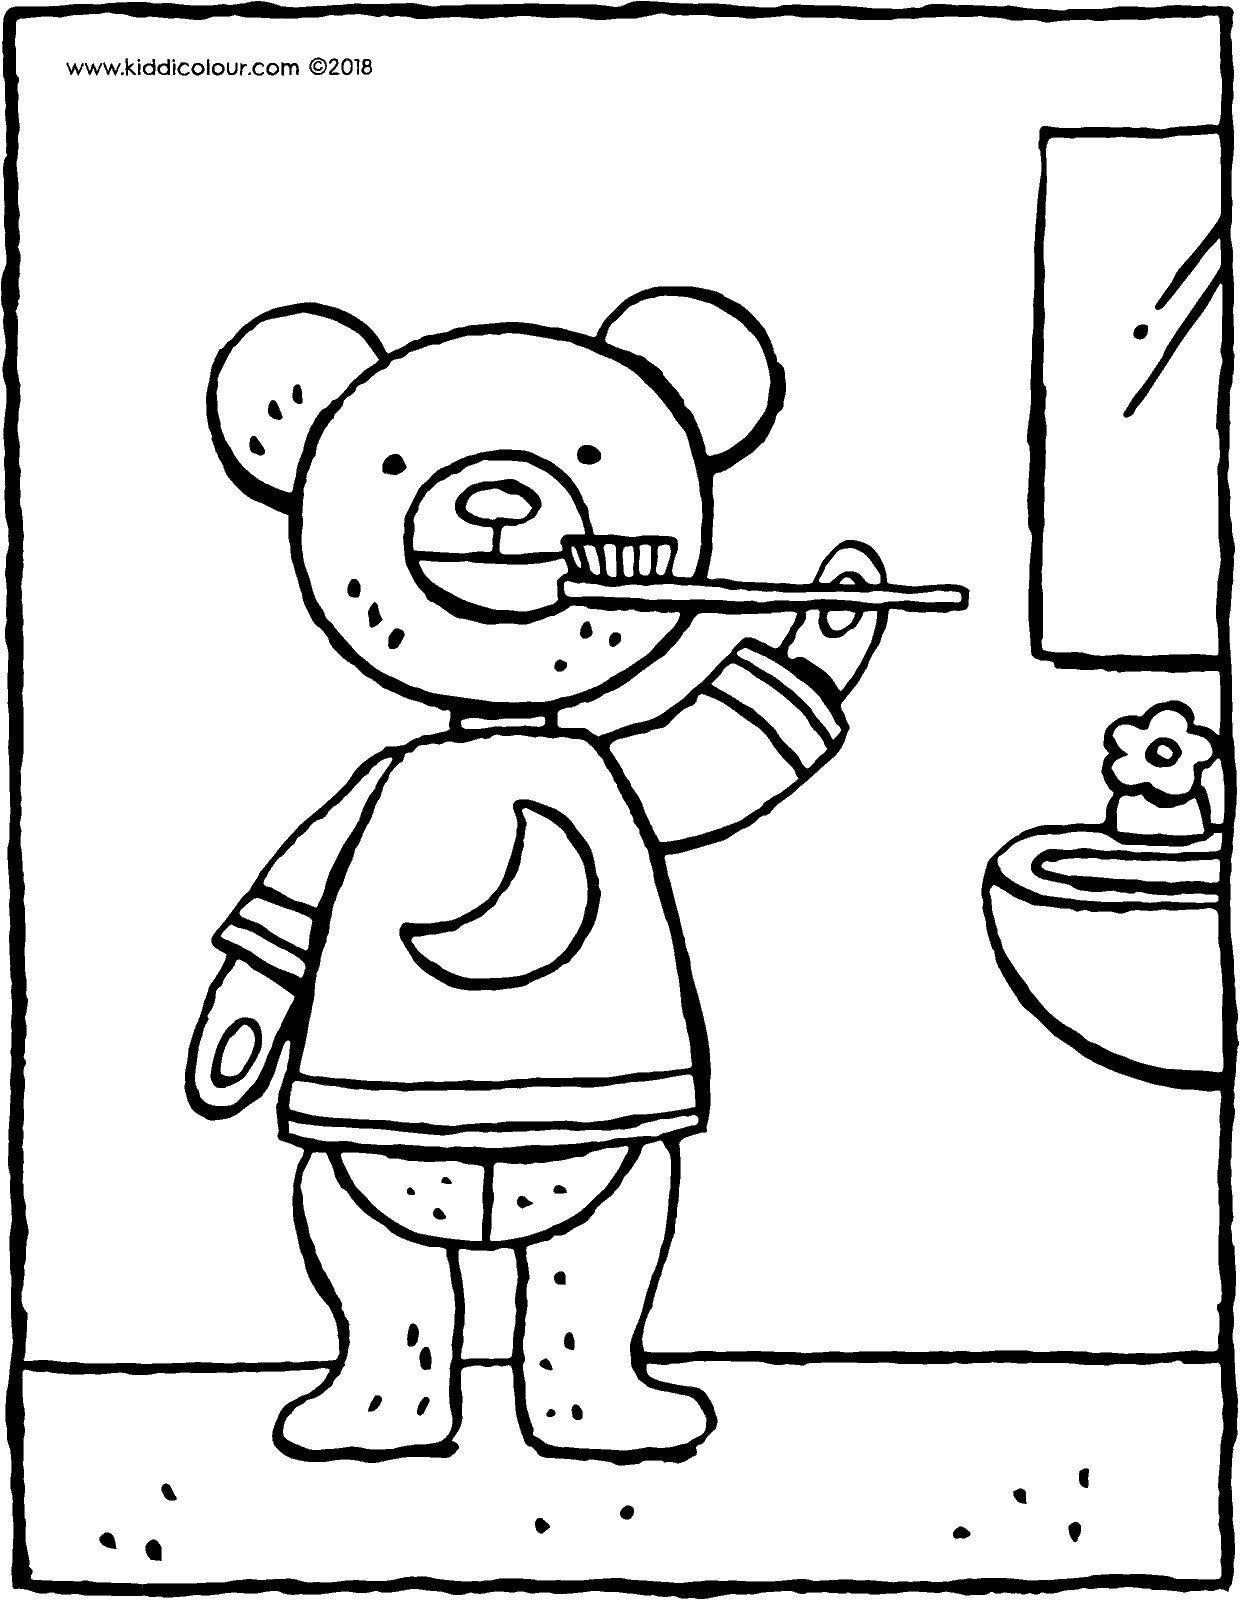 teddy bear brushes his teeth colouring page drawing picture 01V